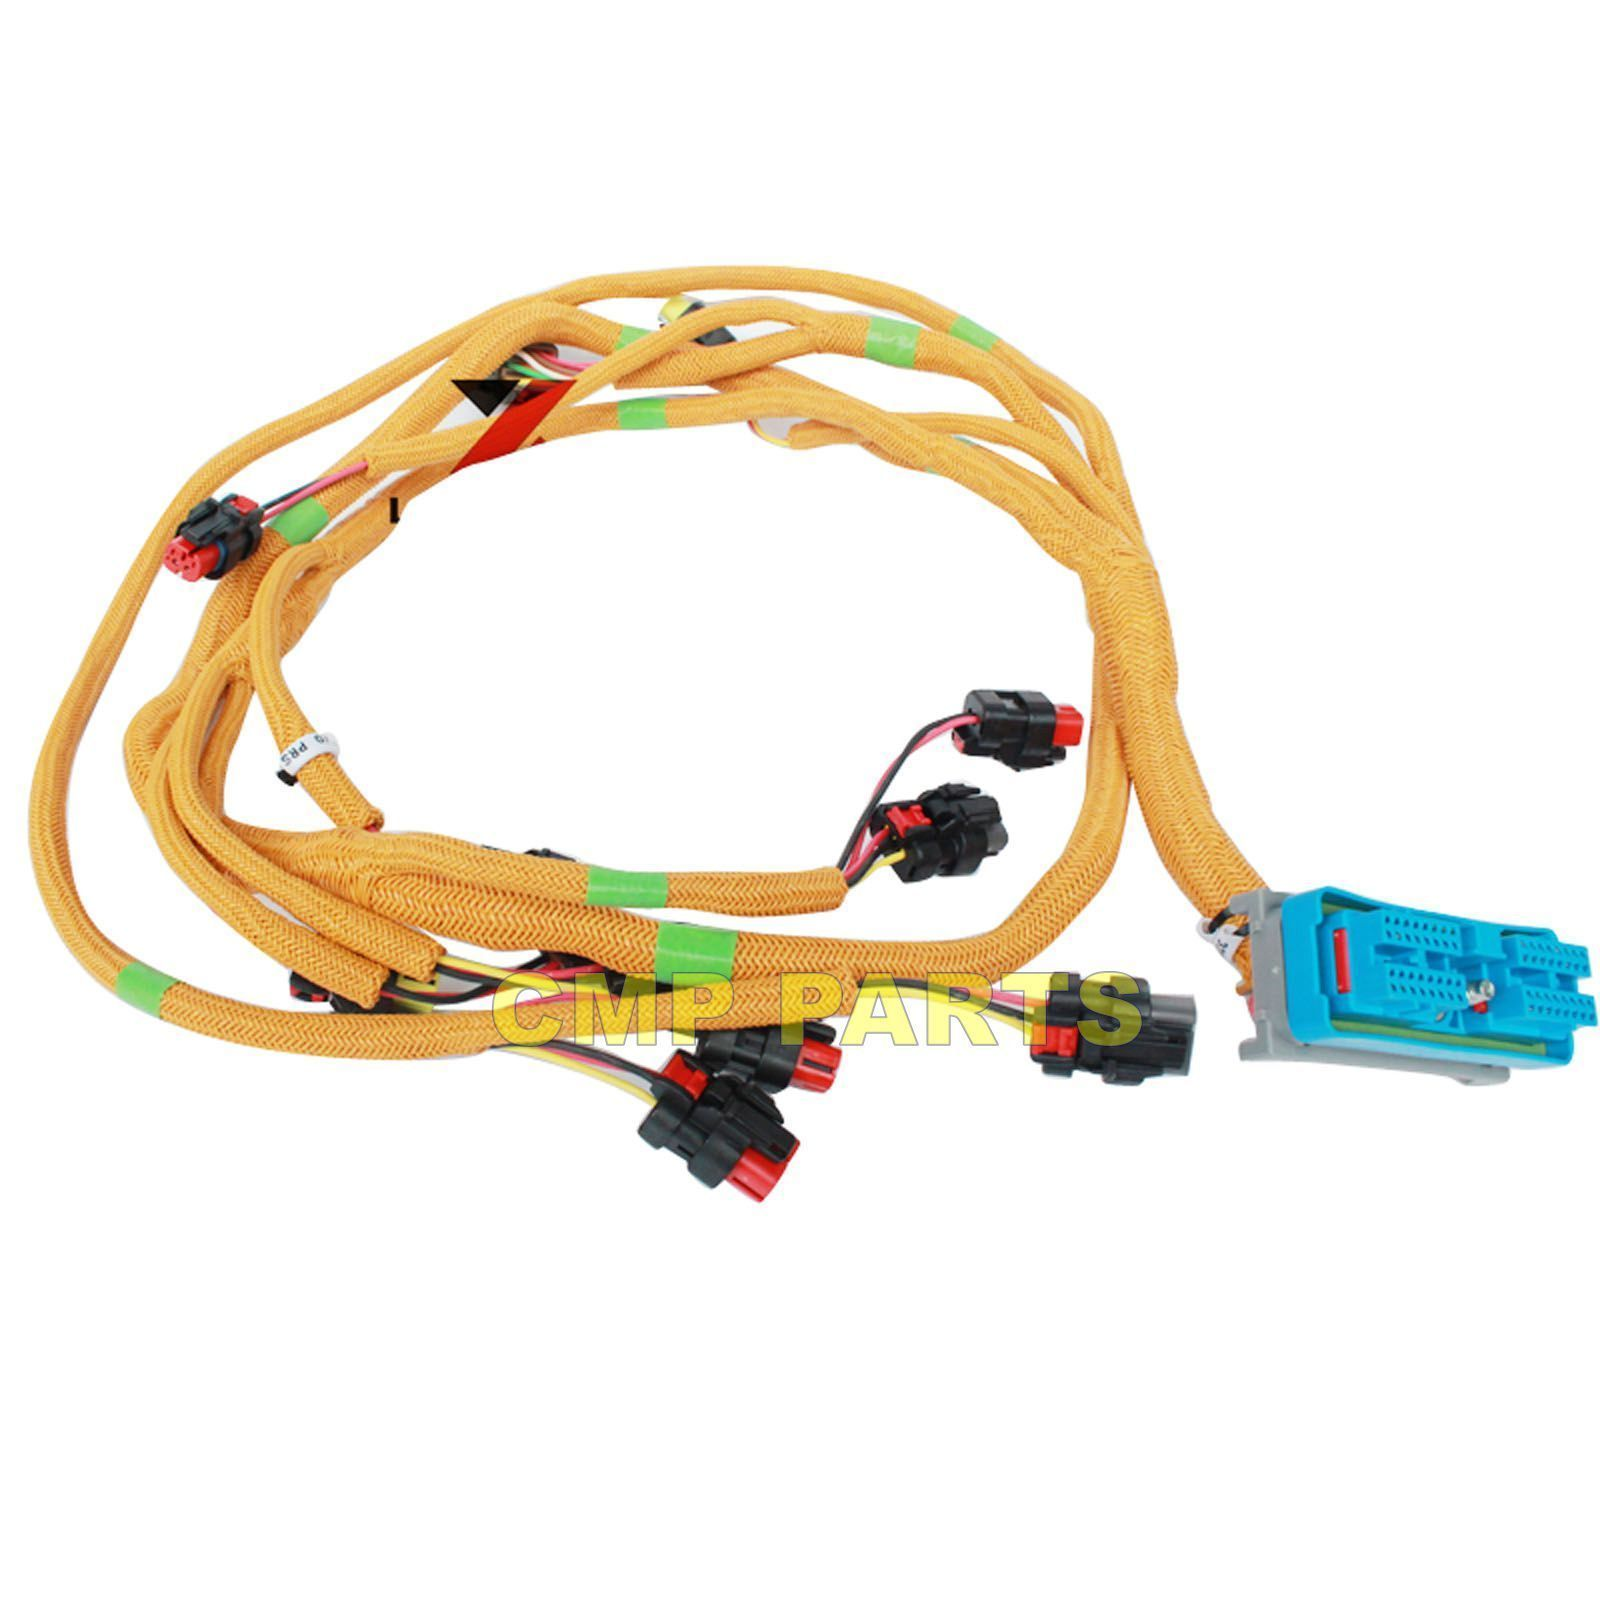 296 4617 Engine Wiring Harness Fits And Similar Items S Caterpillar Excavator 320d E320d C64